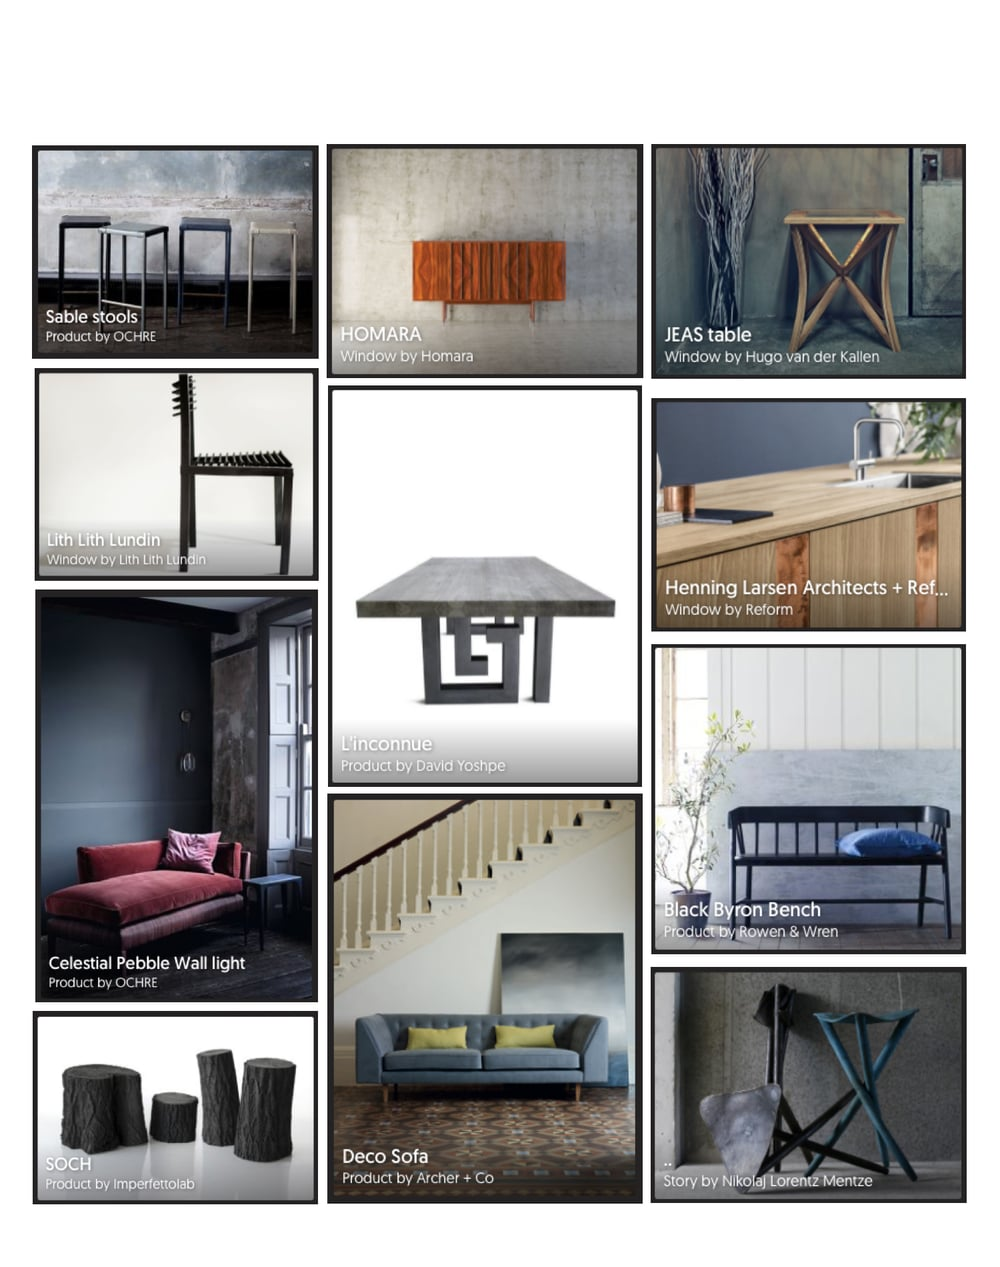 "Here are some beautiful items selected from my label ""Furniture"" at thewindow.com Photography supplied courtesy of Ochre, Homara, Hugo van der Kallen, Lith Lith Lundin, David Yoshpe, Henning Larsen Architects + Reform, Nicolaj Lorentz Mentze, Archer + Co via www.thewindow.com Many Thanks!"